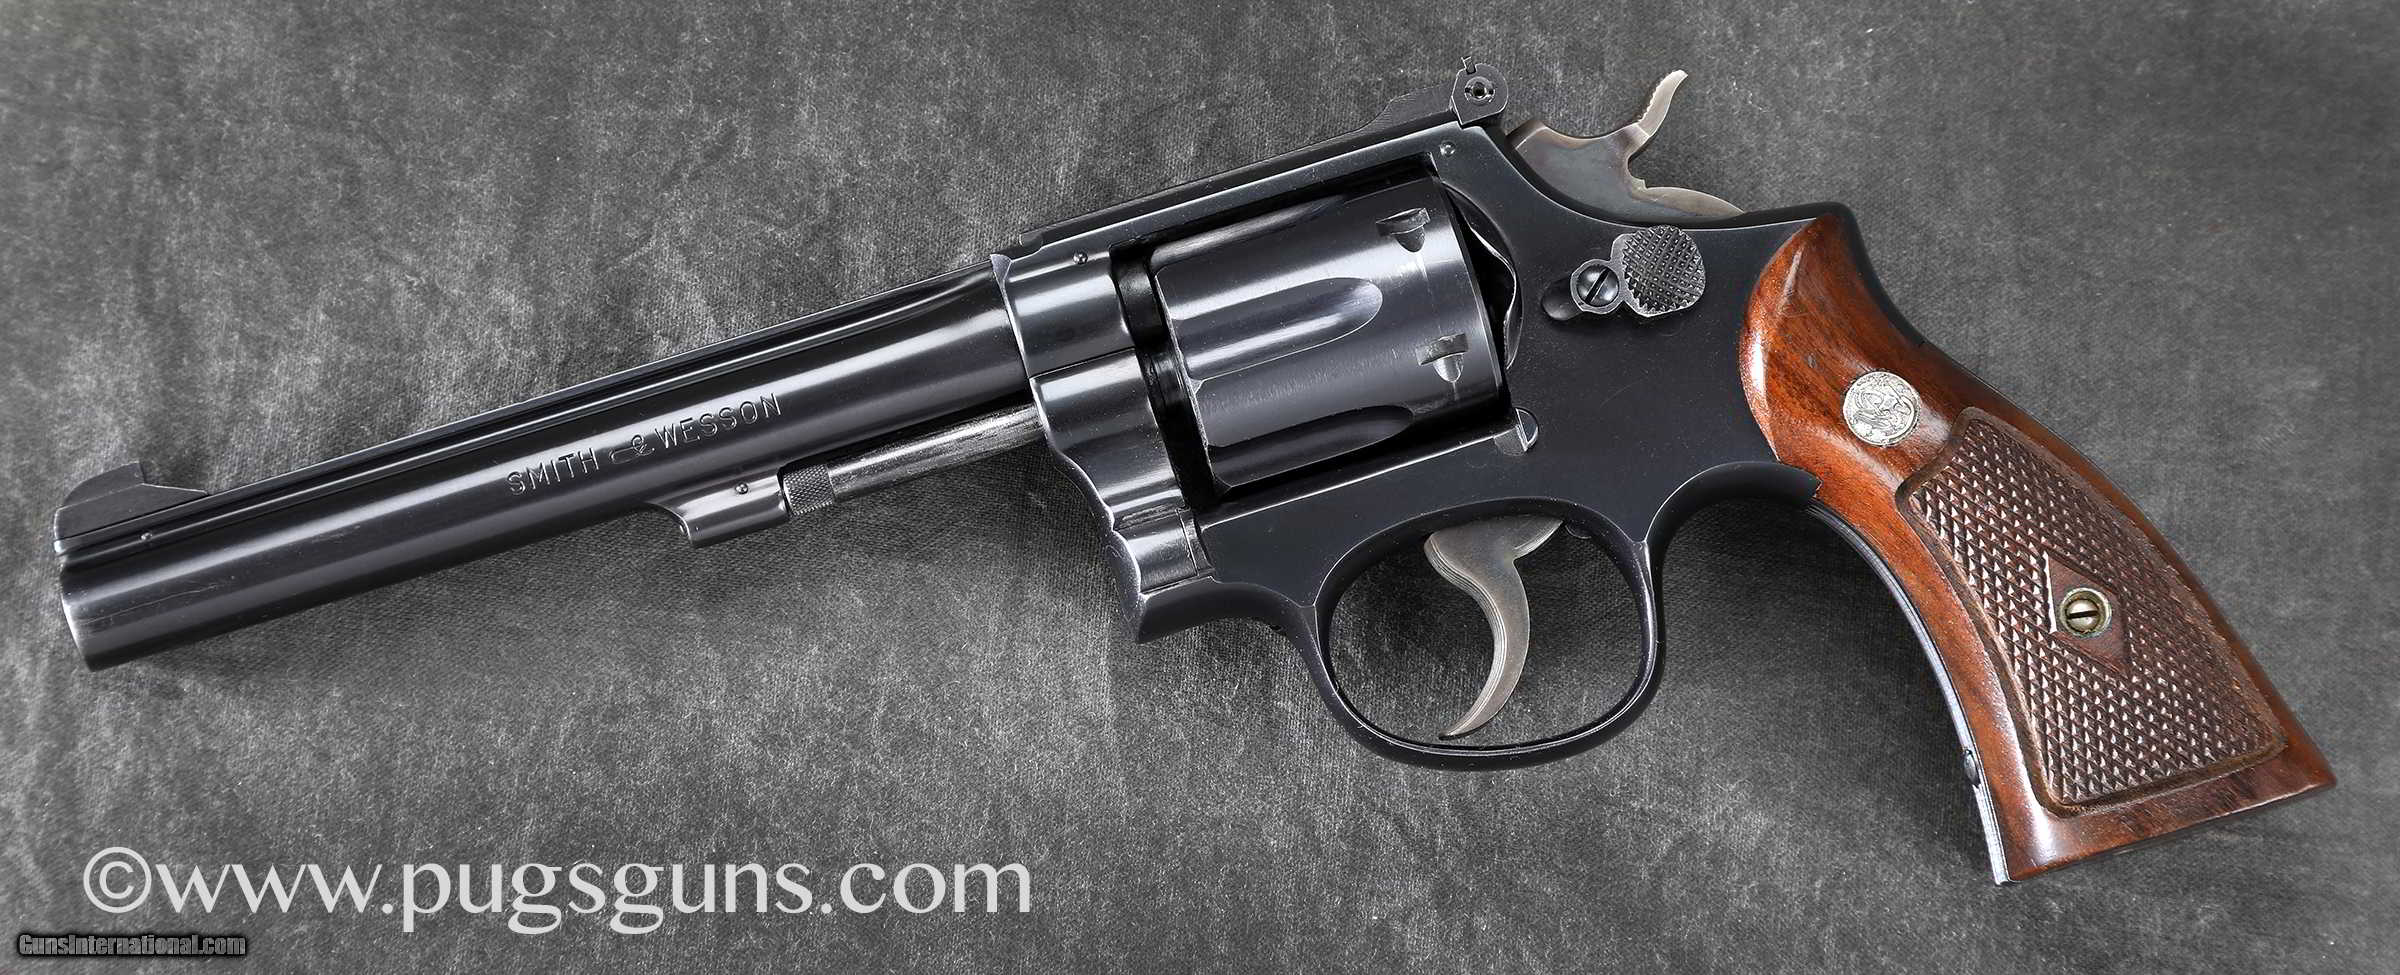 Manufacture date for Smith Wesson K-22 Serial number K340133